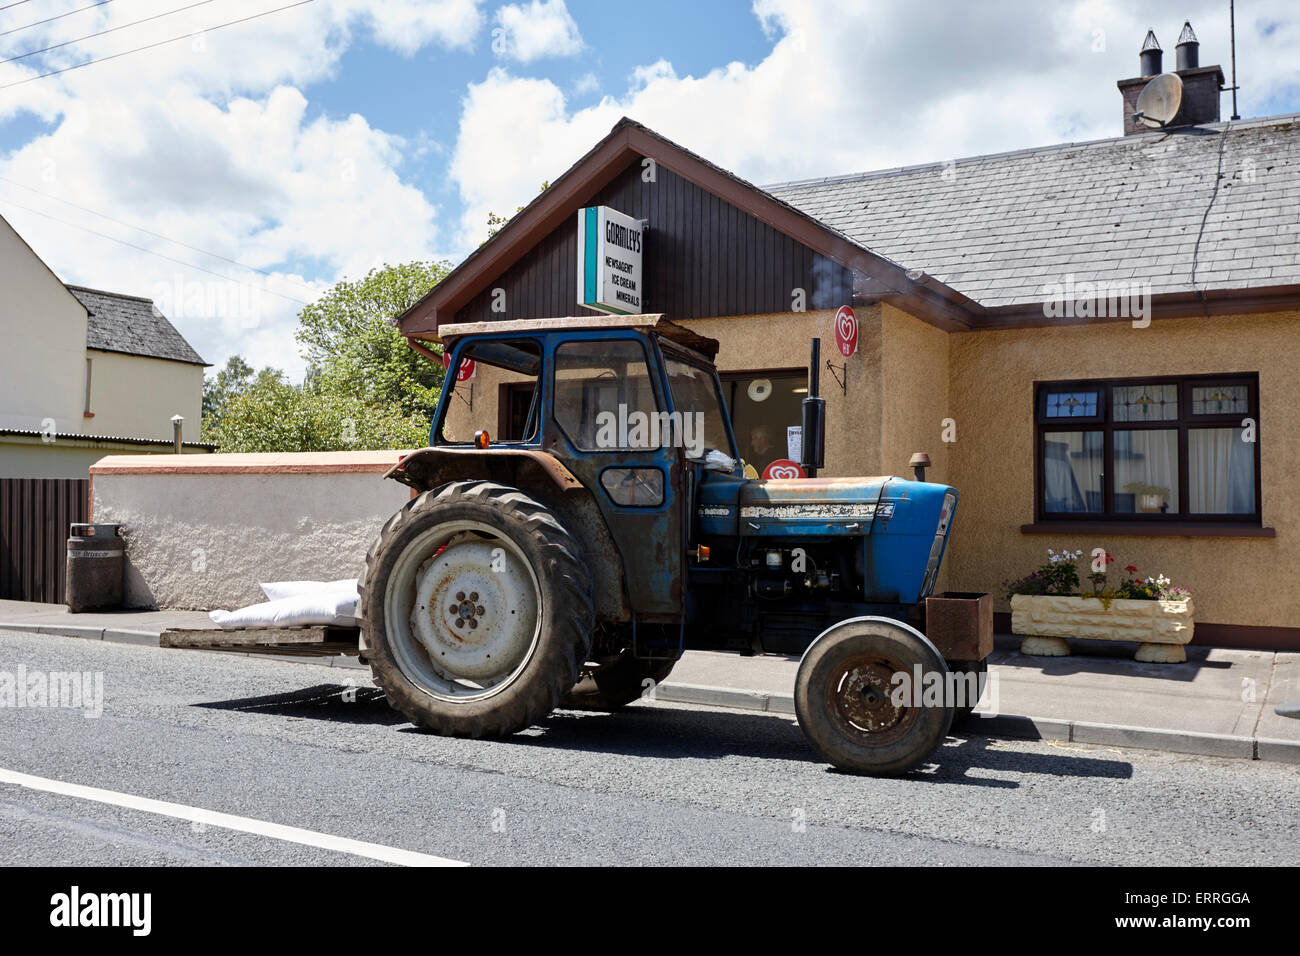 old tractor parked outside a local shop in a small village in rural ireland emyvale monaghan - Stock Image